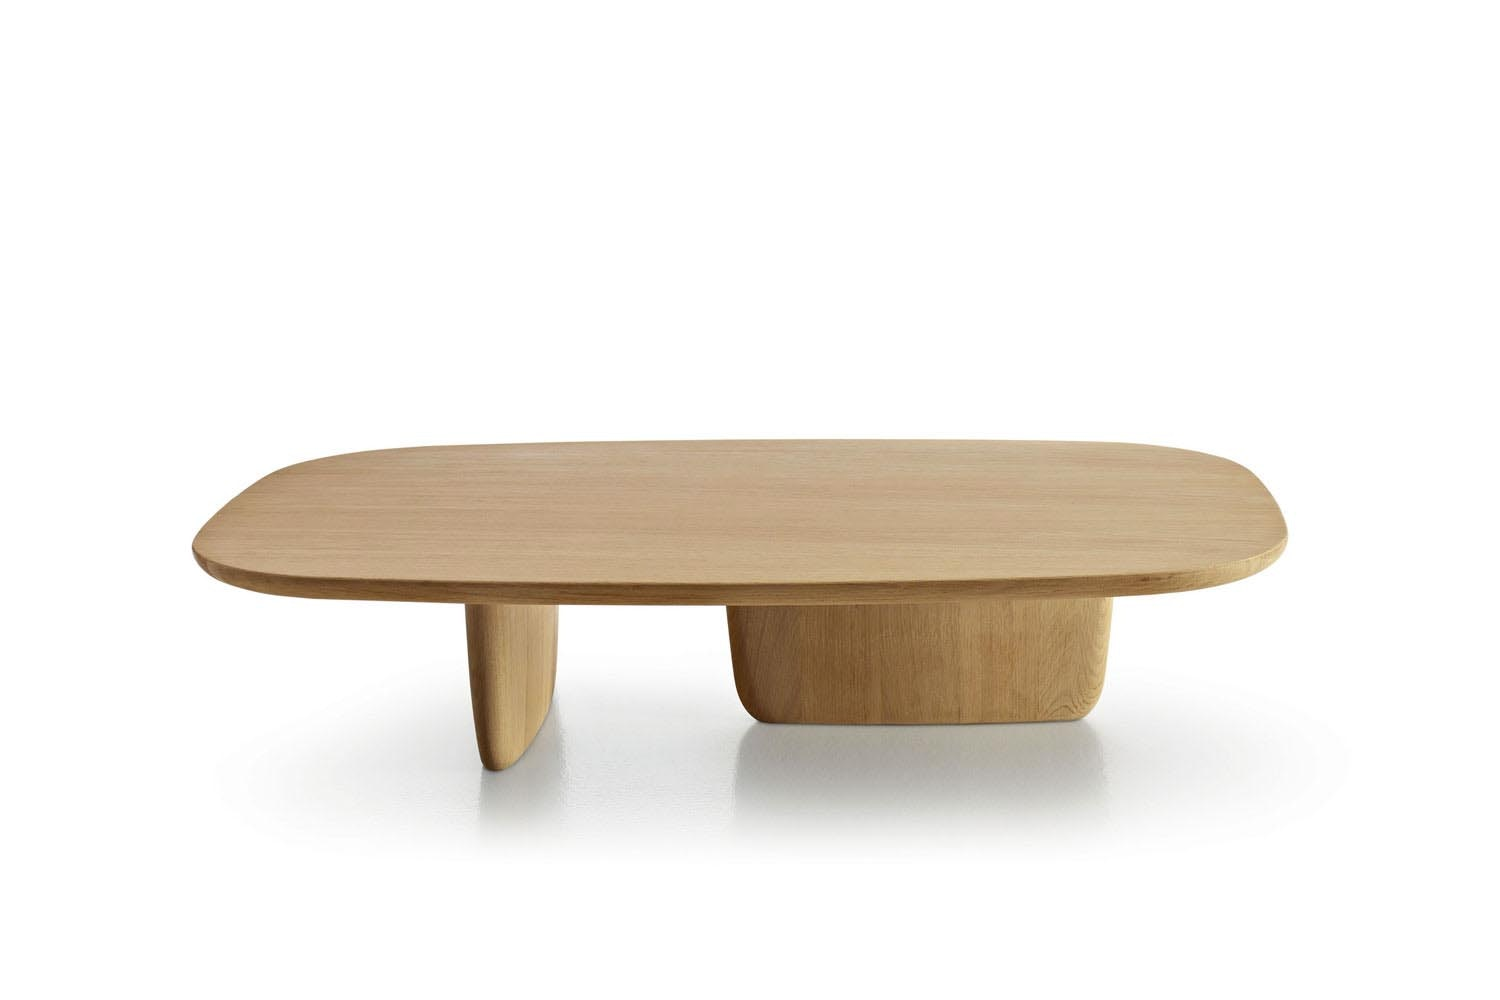 Tobi-Ishi Coffee Table by Edward Barber & Jay Osgerby